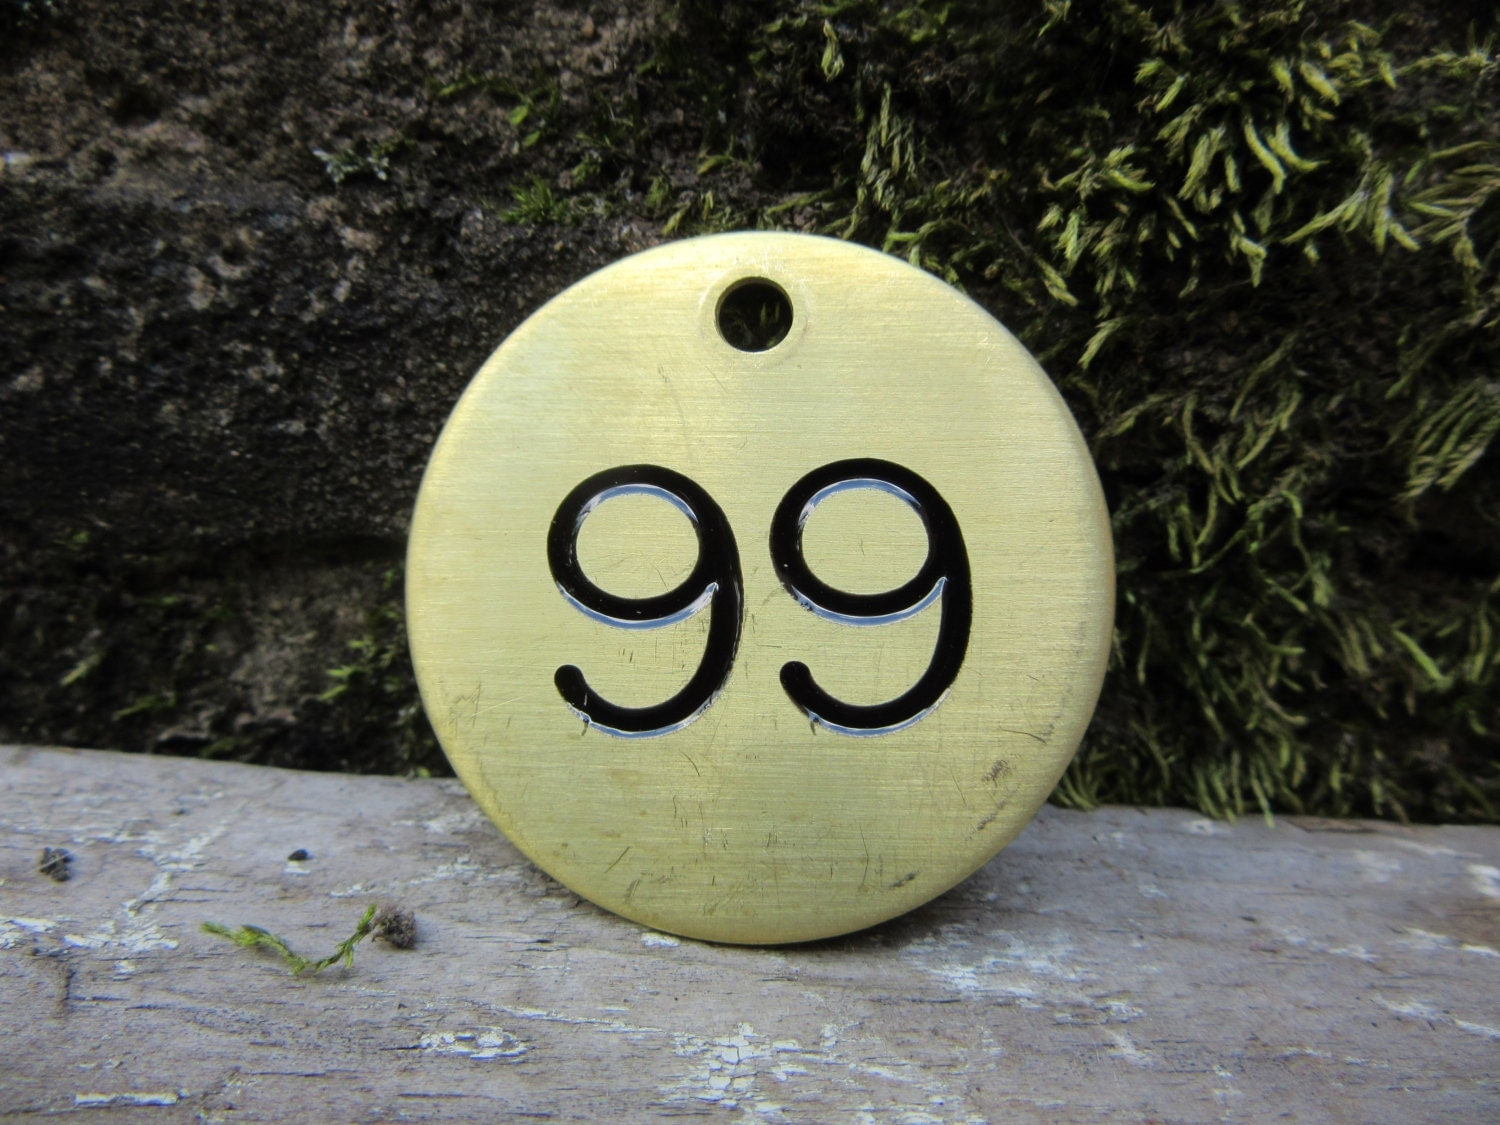 Number 99 Tag Brass Metal 99 Industrial Tag 1999 Birth Year